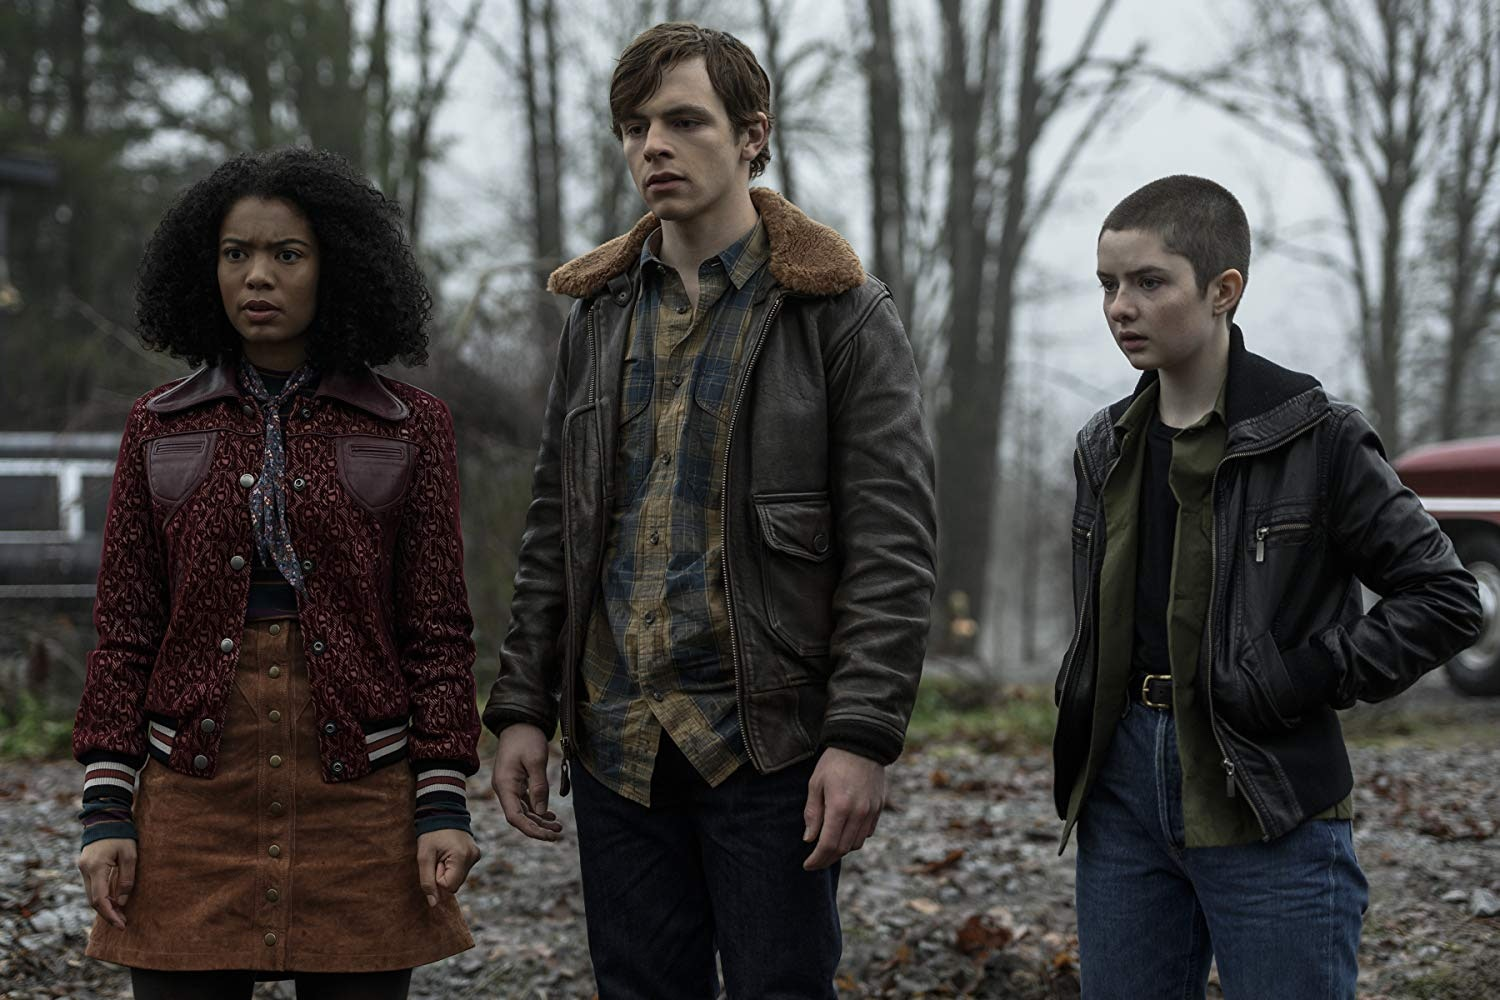 Jaz Sinclair, Ross Lynch, and Lachlan Watson in Netflix's 'Chilling Adventures of Sabrina' season 2